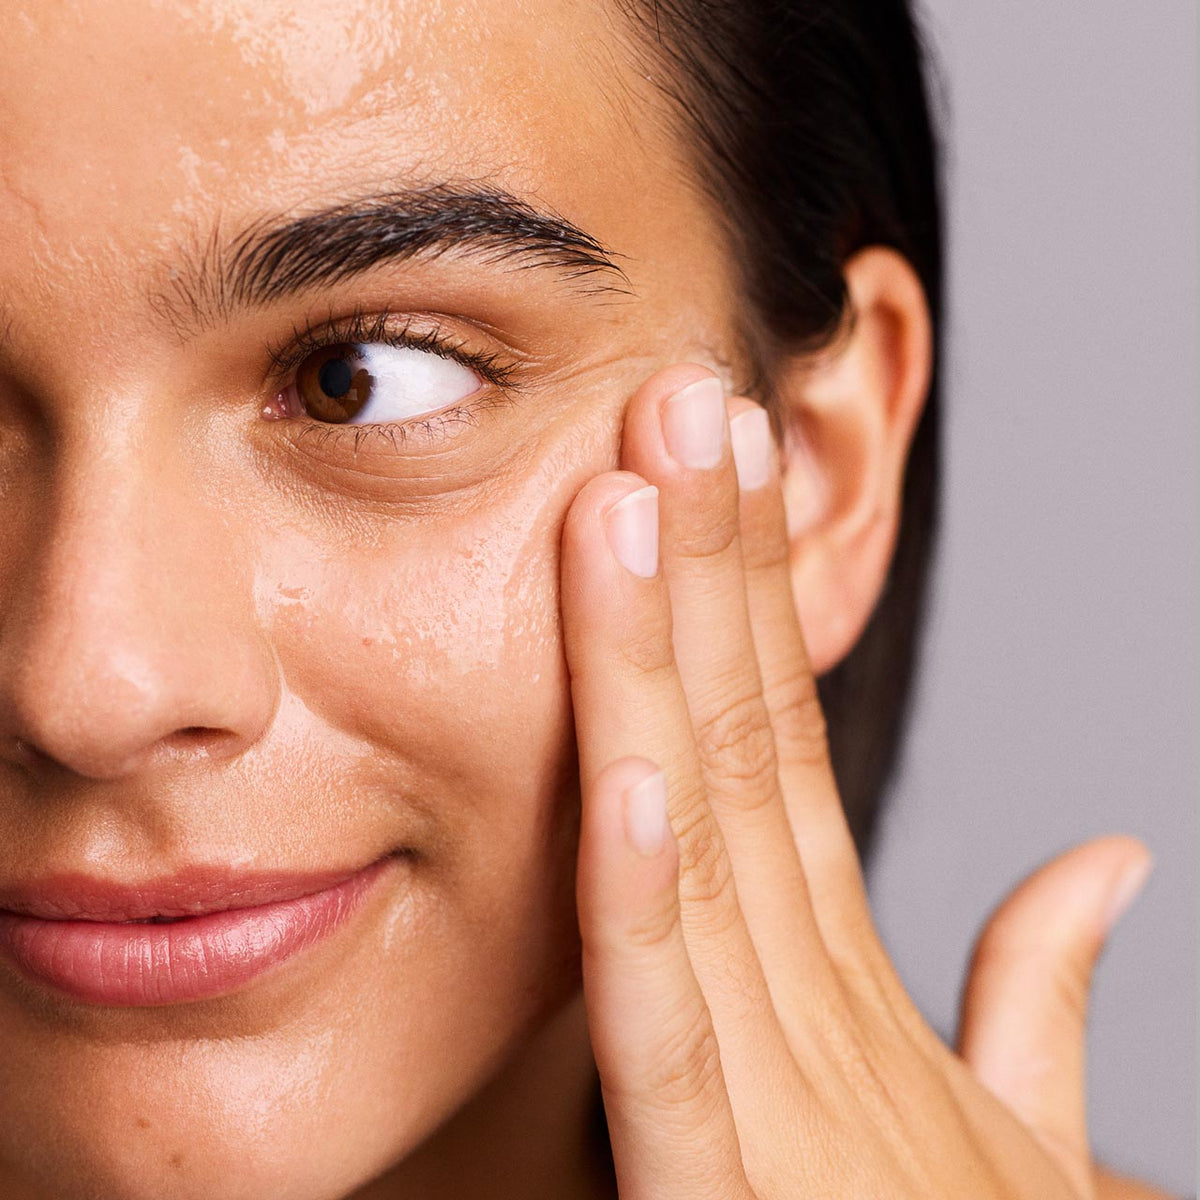 Here's Why Niacinamide is So Good For Your Skin